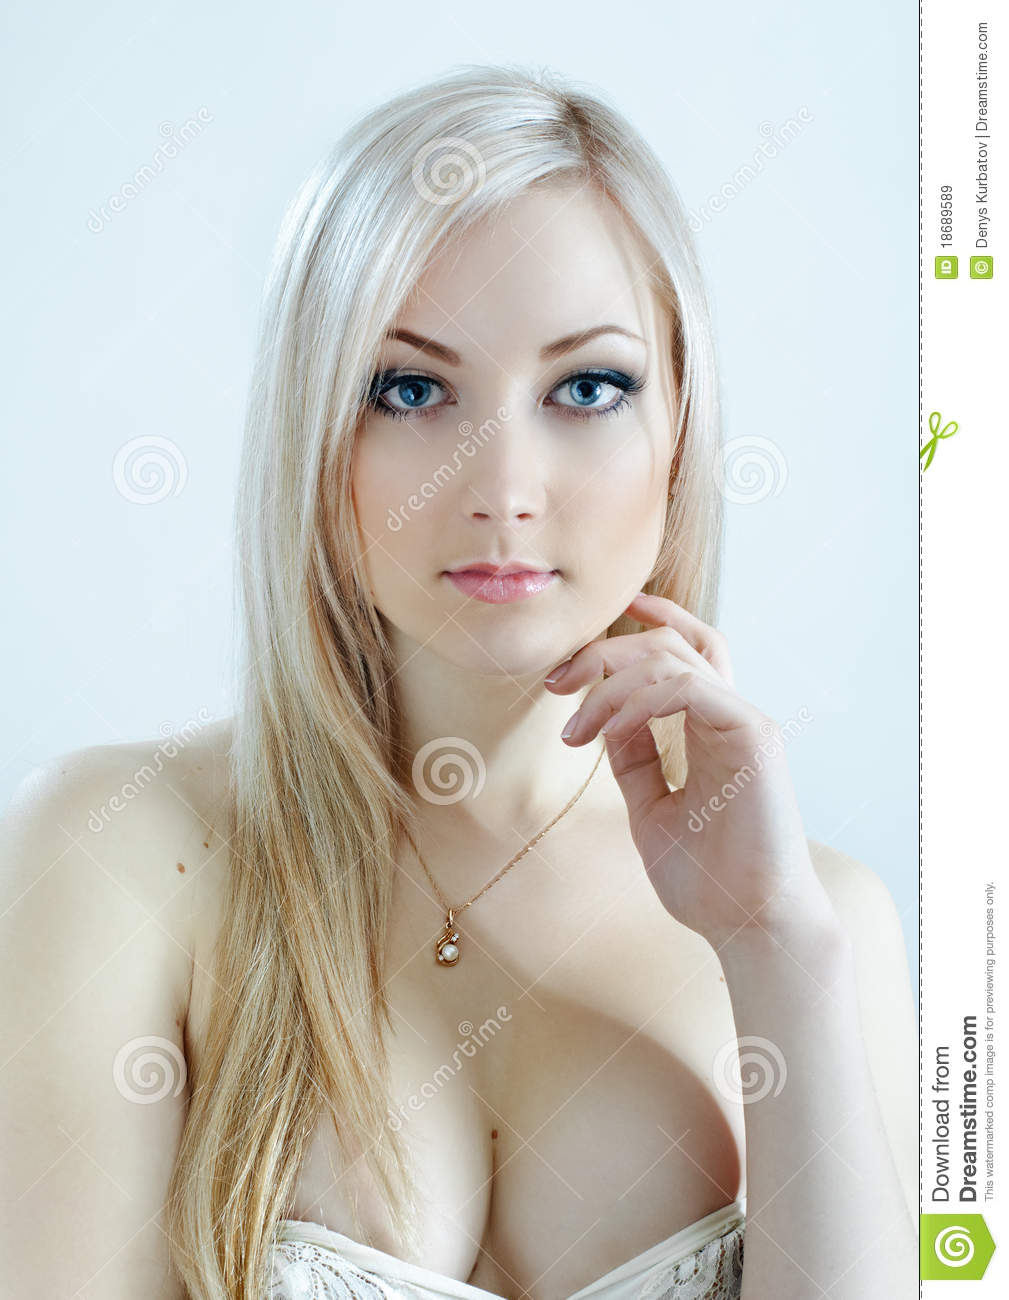 Beauty Blonde In Cold Colours Royalty Free Stock Images: Beauty Blonde In Cold Colours Stock Image